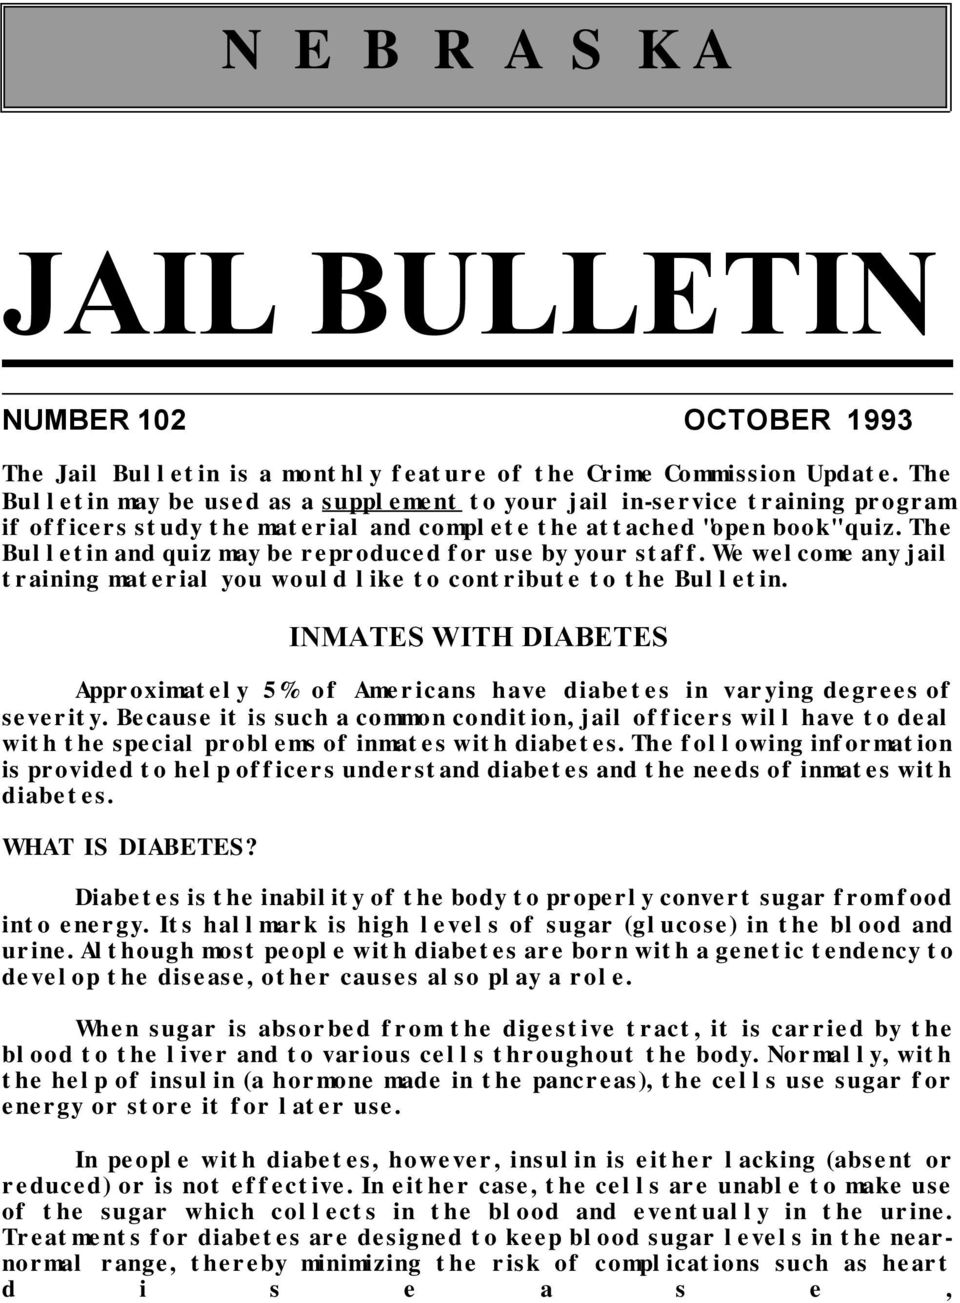 The Bulletin and quiz may be reproduced for use by your staff. We welcome any jail training material you would like to contribute to the Bulletin.